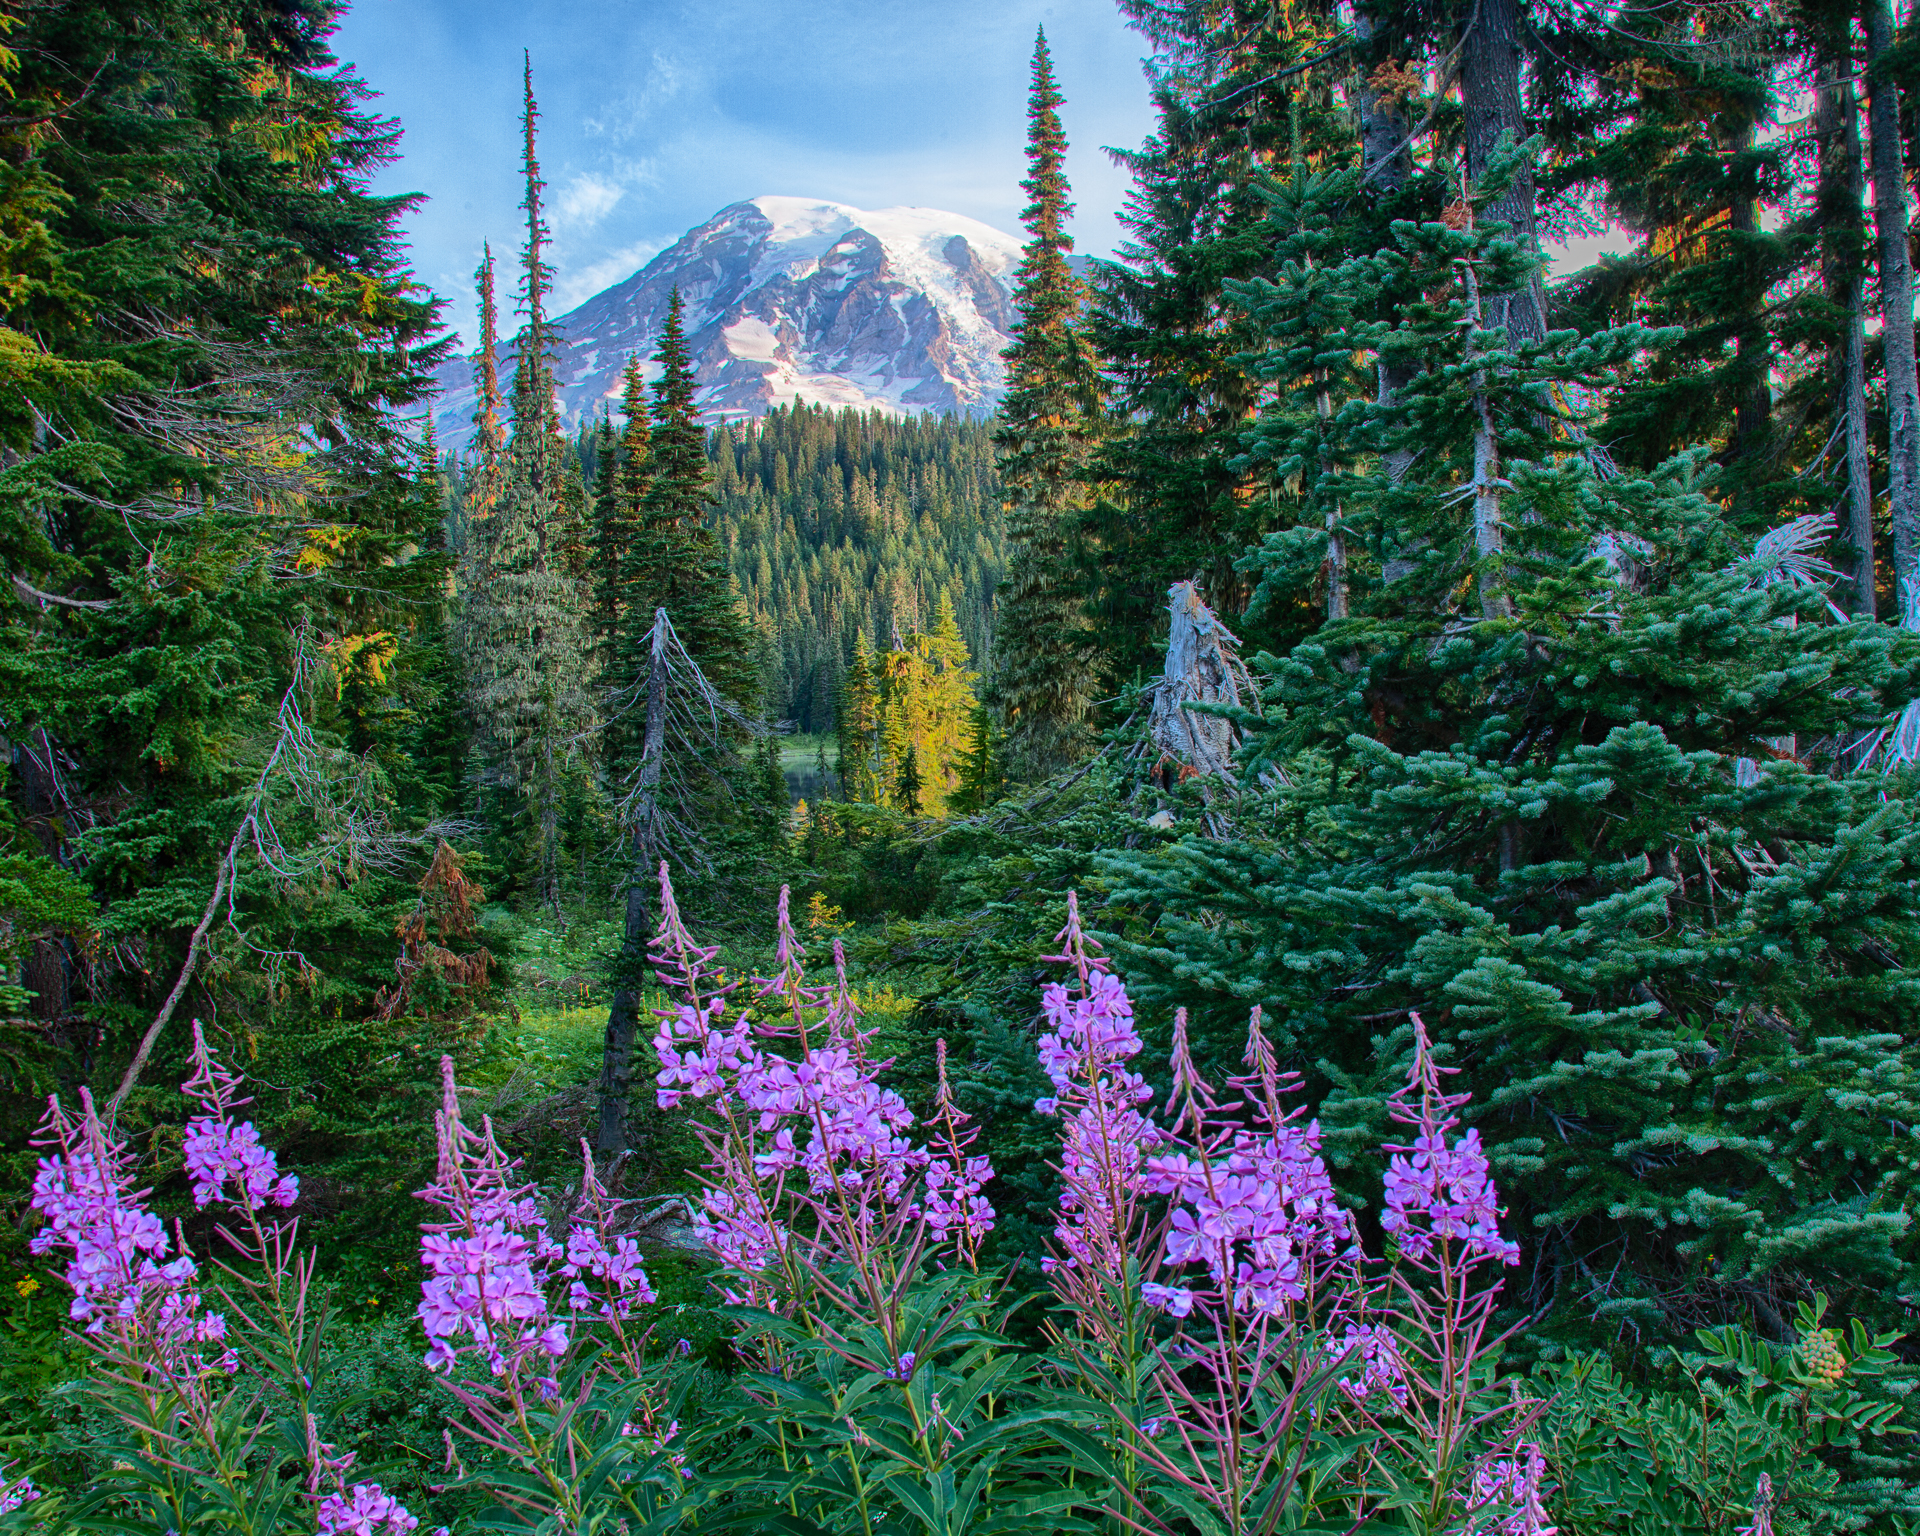 Even at lower elevations, there were lots of flowers in bloom.